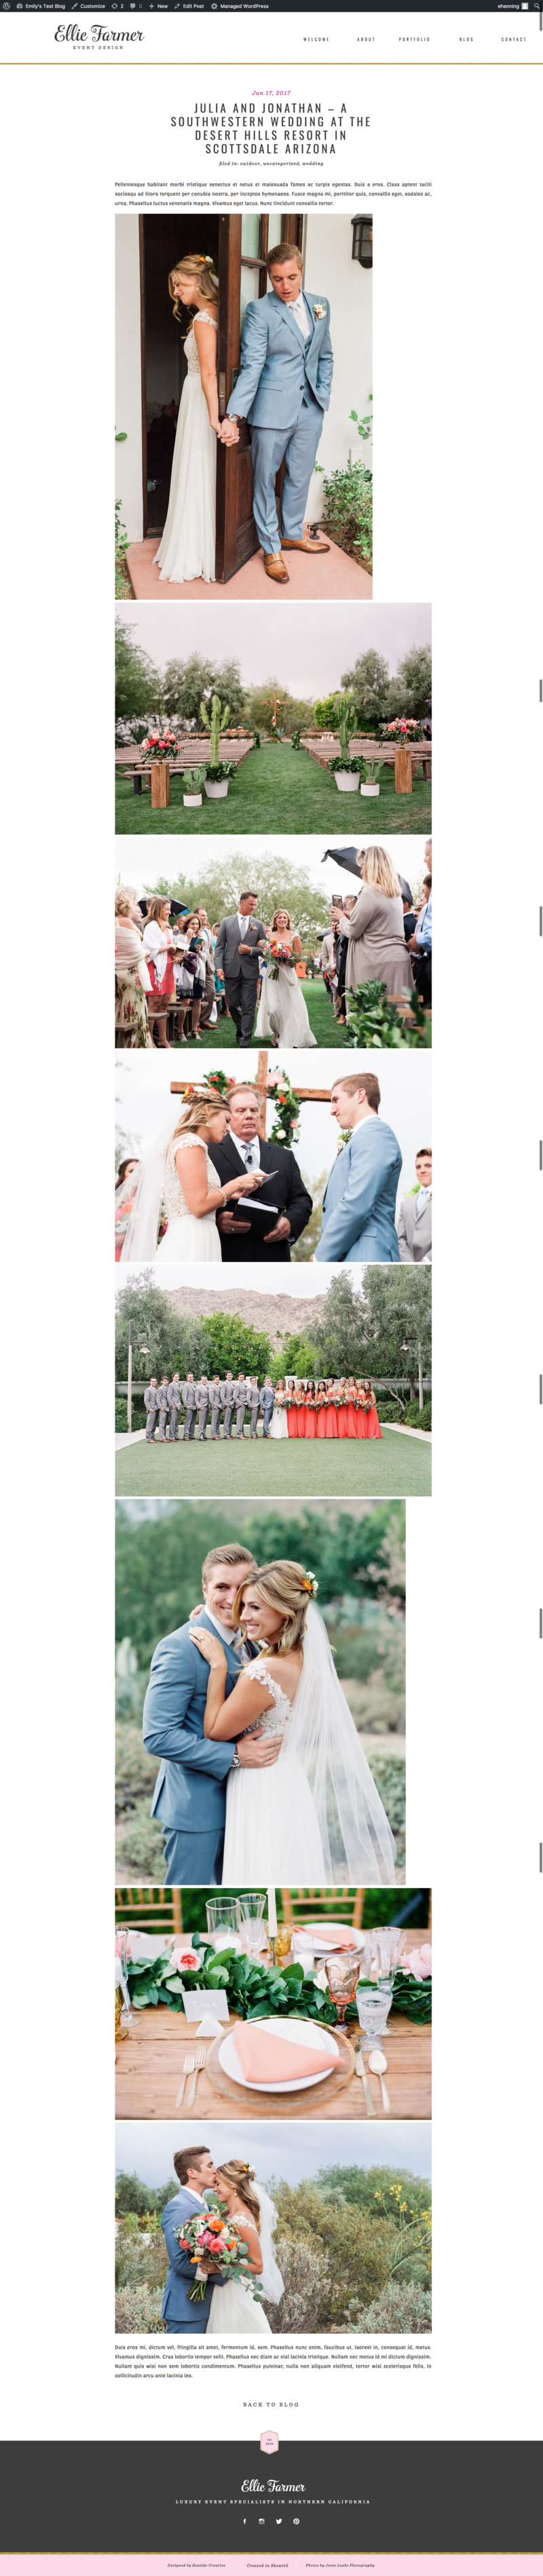 screencapture-testblog-seasidecreative-2017-01-julia-and-jonathan-a-southwestern-wedding-at-the-desert-hills-resort-in-scottsdale-arizona-1495652611536